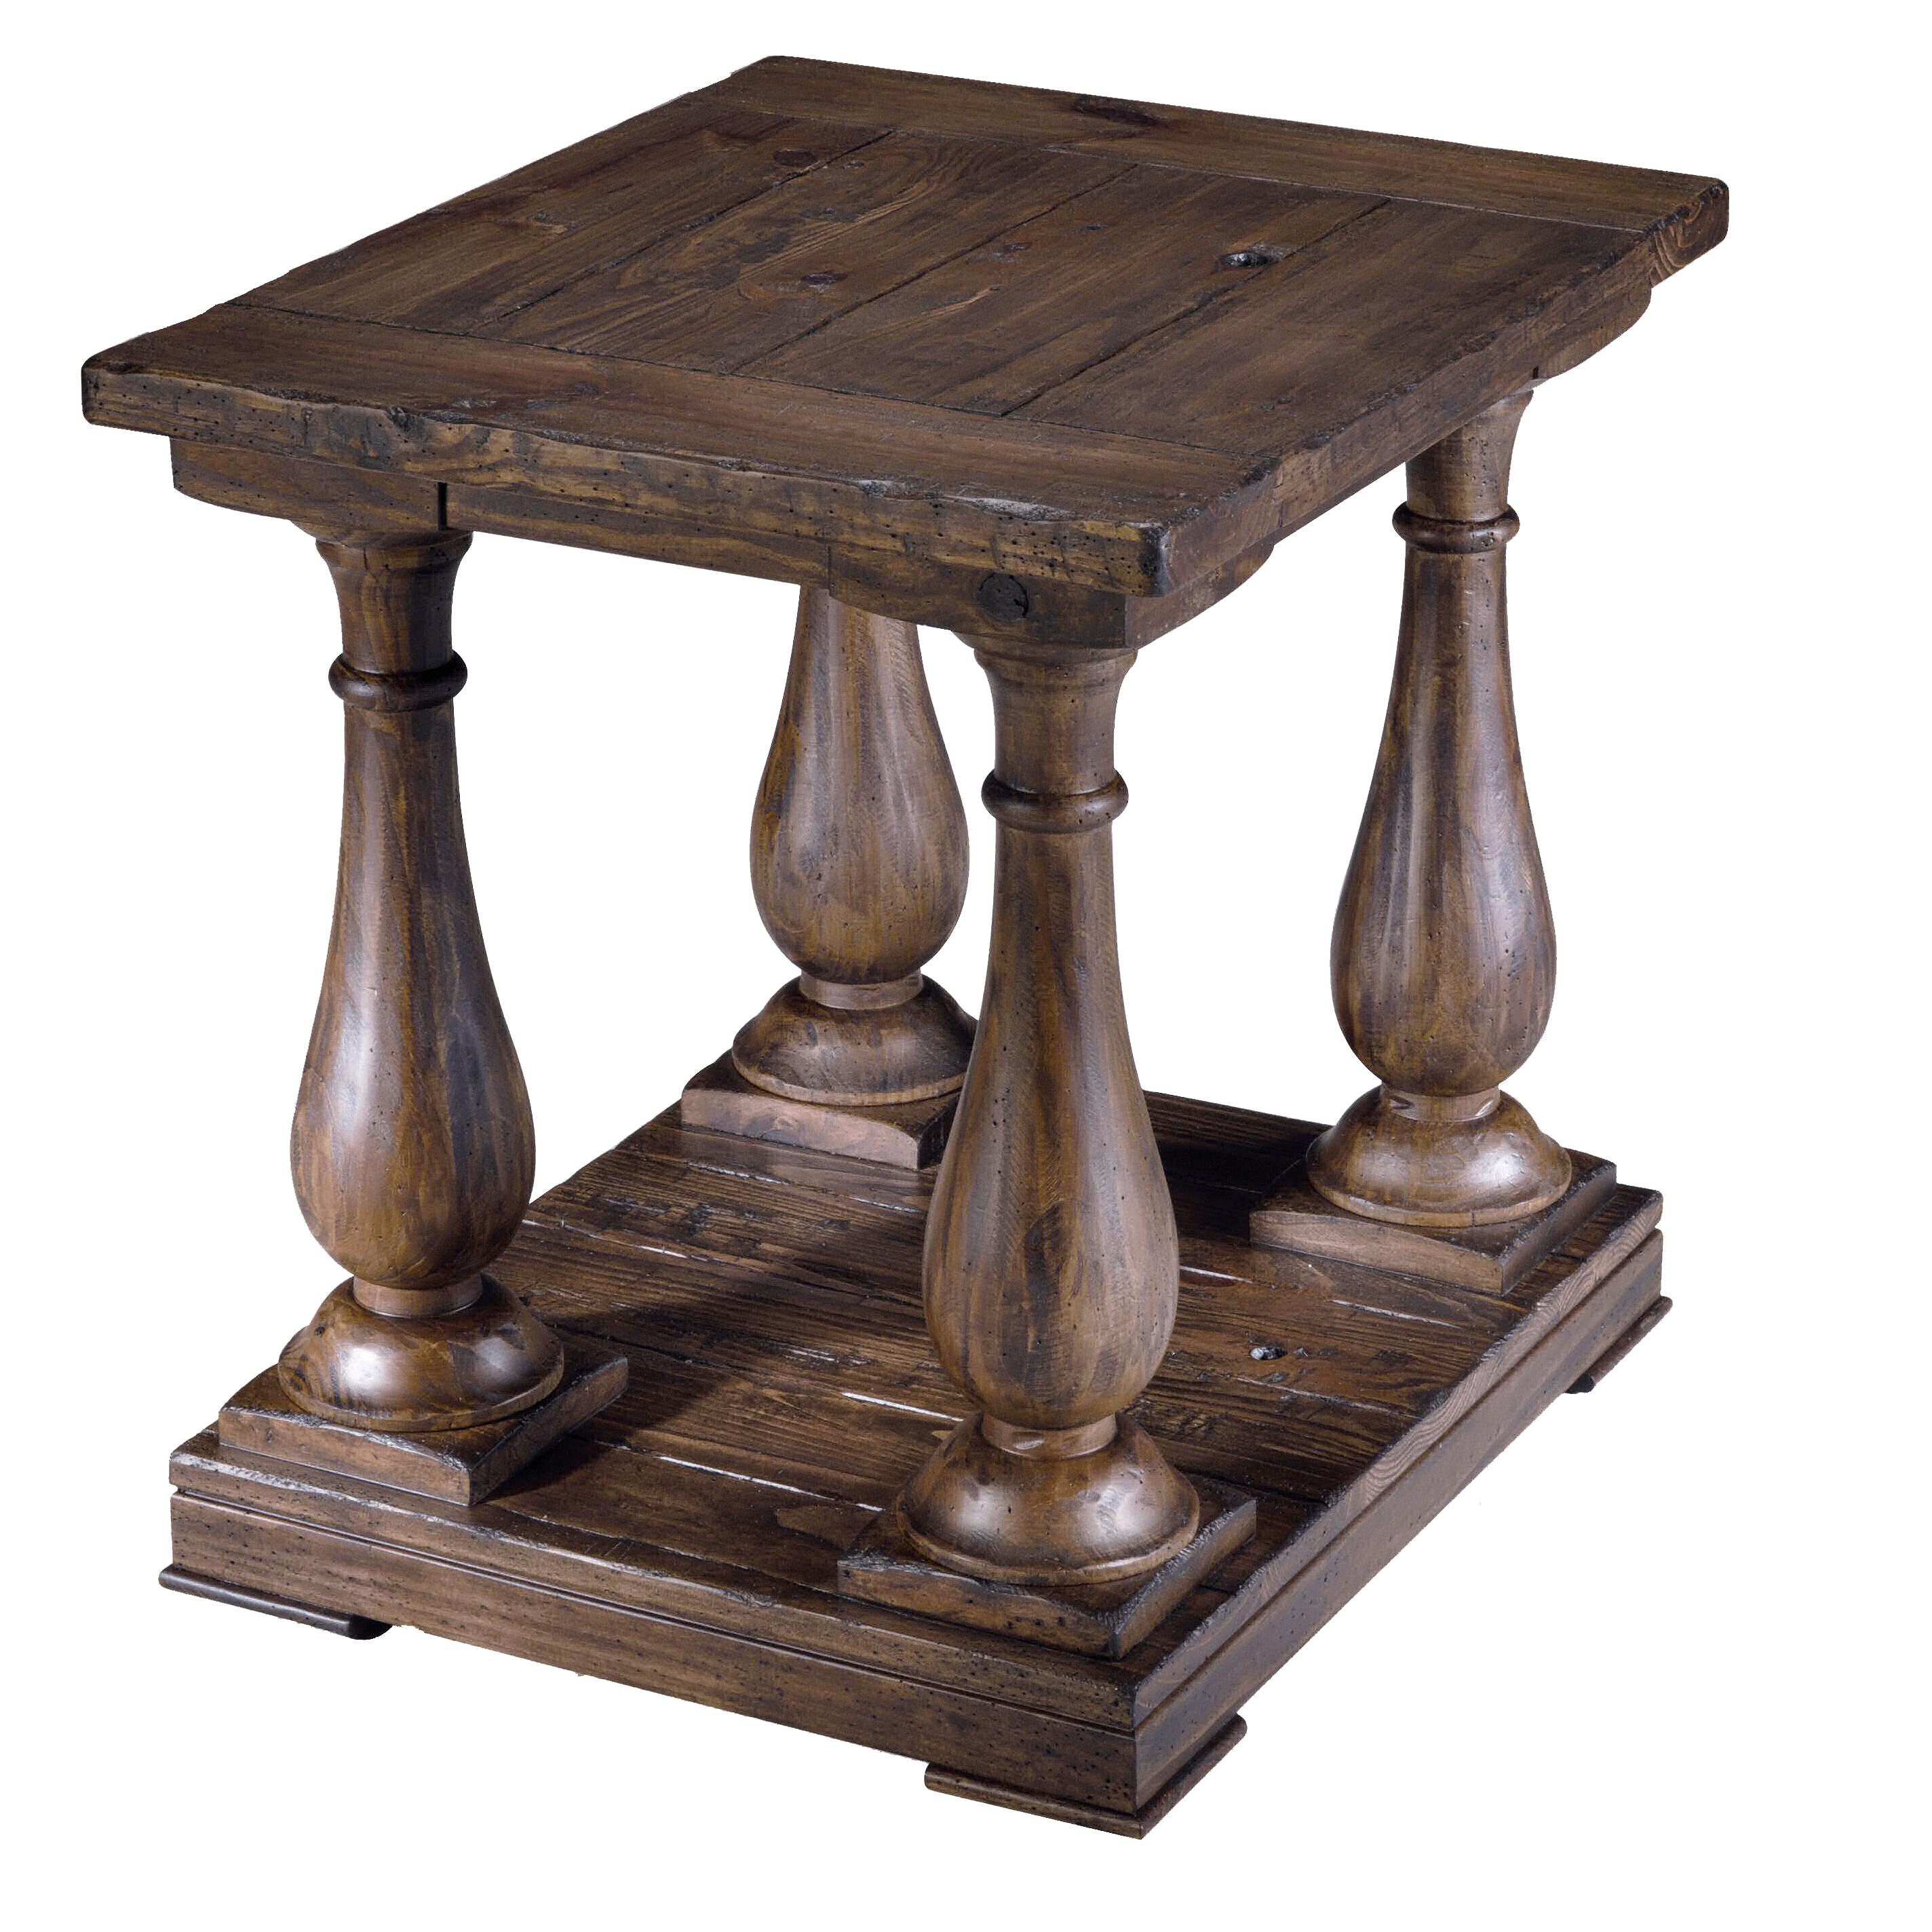 rectangular column end table magnussen home wolf and gardiner products color densbury accent legs meyda tiffany dragonfly lamp round farmhouse dining ikea wooden storage box metal